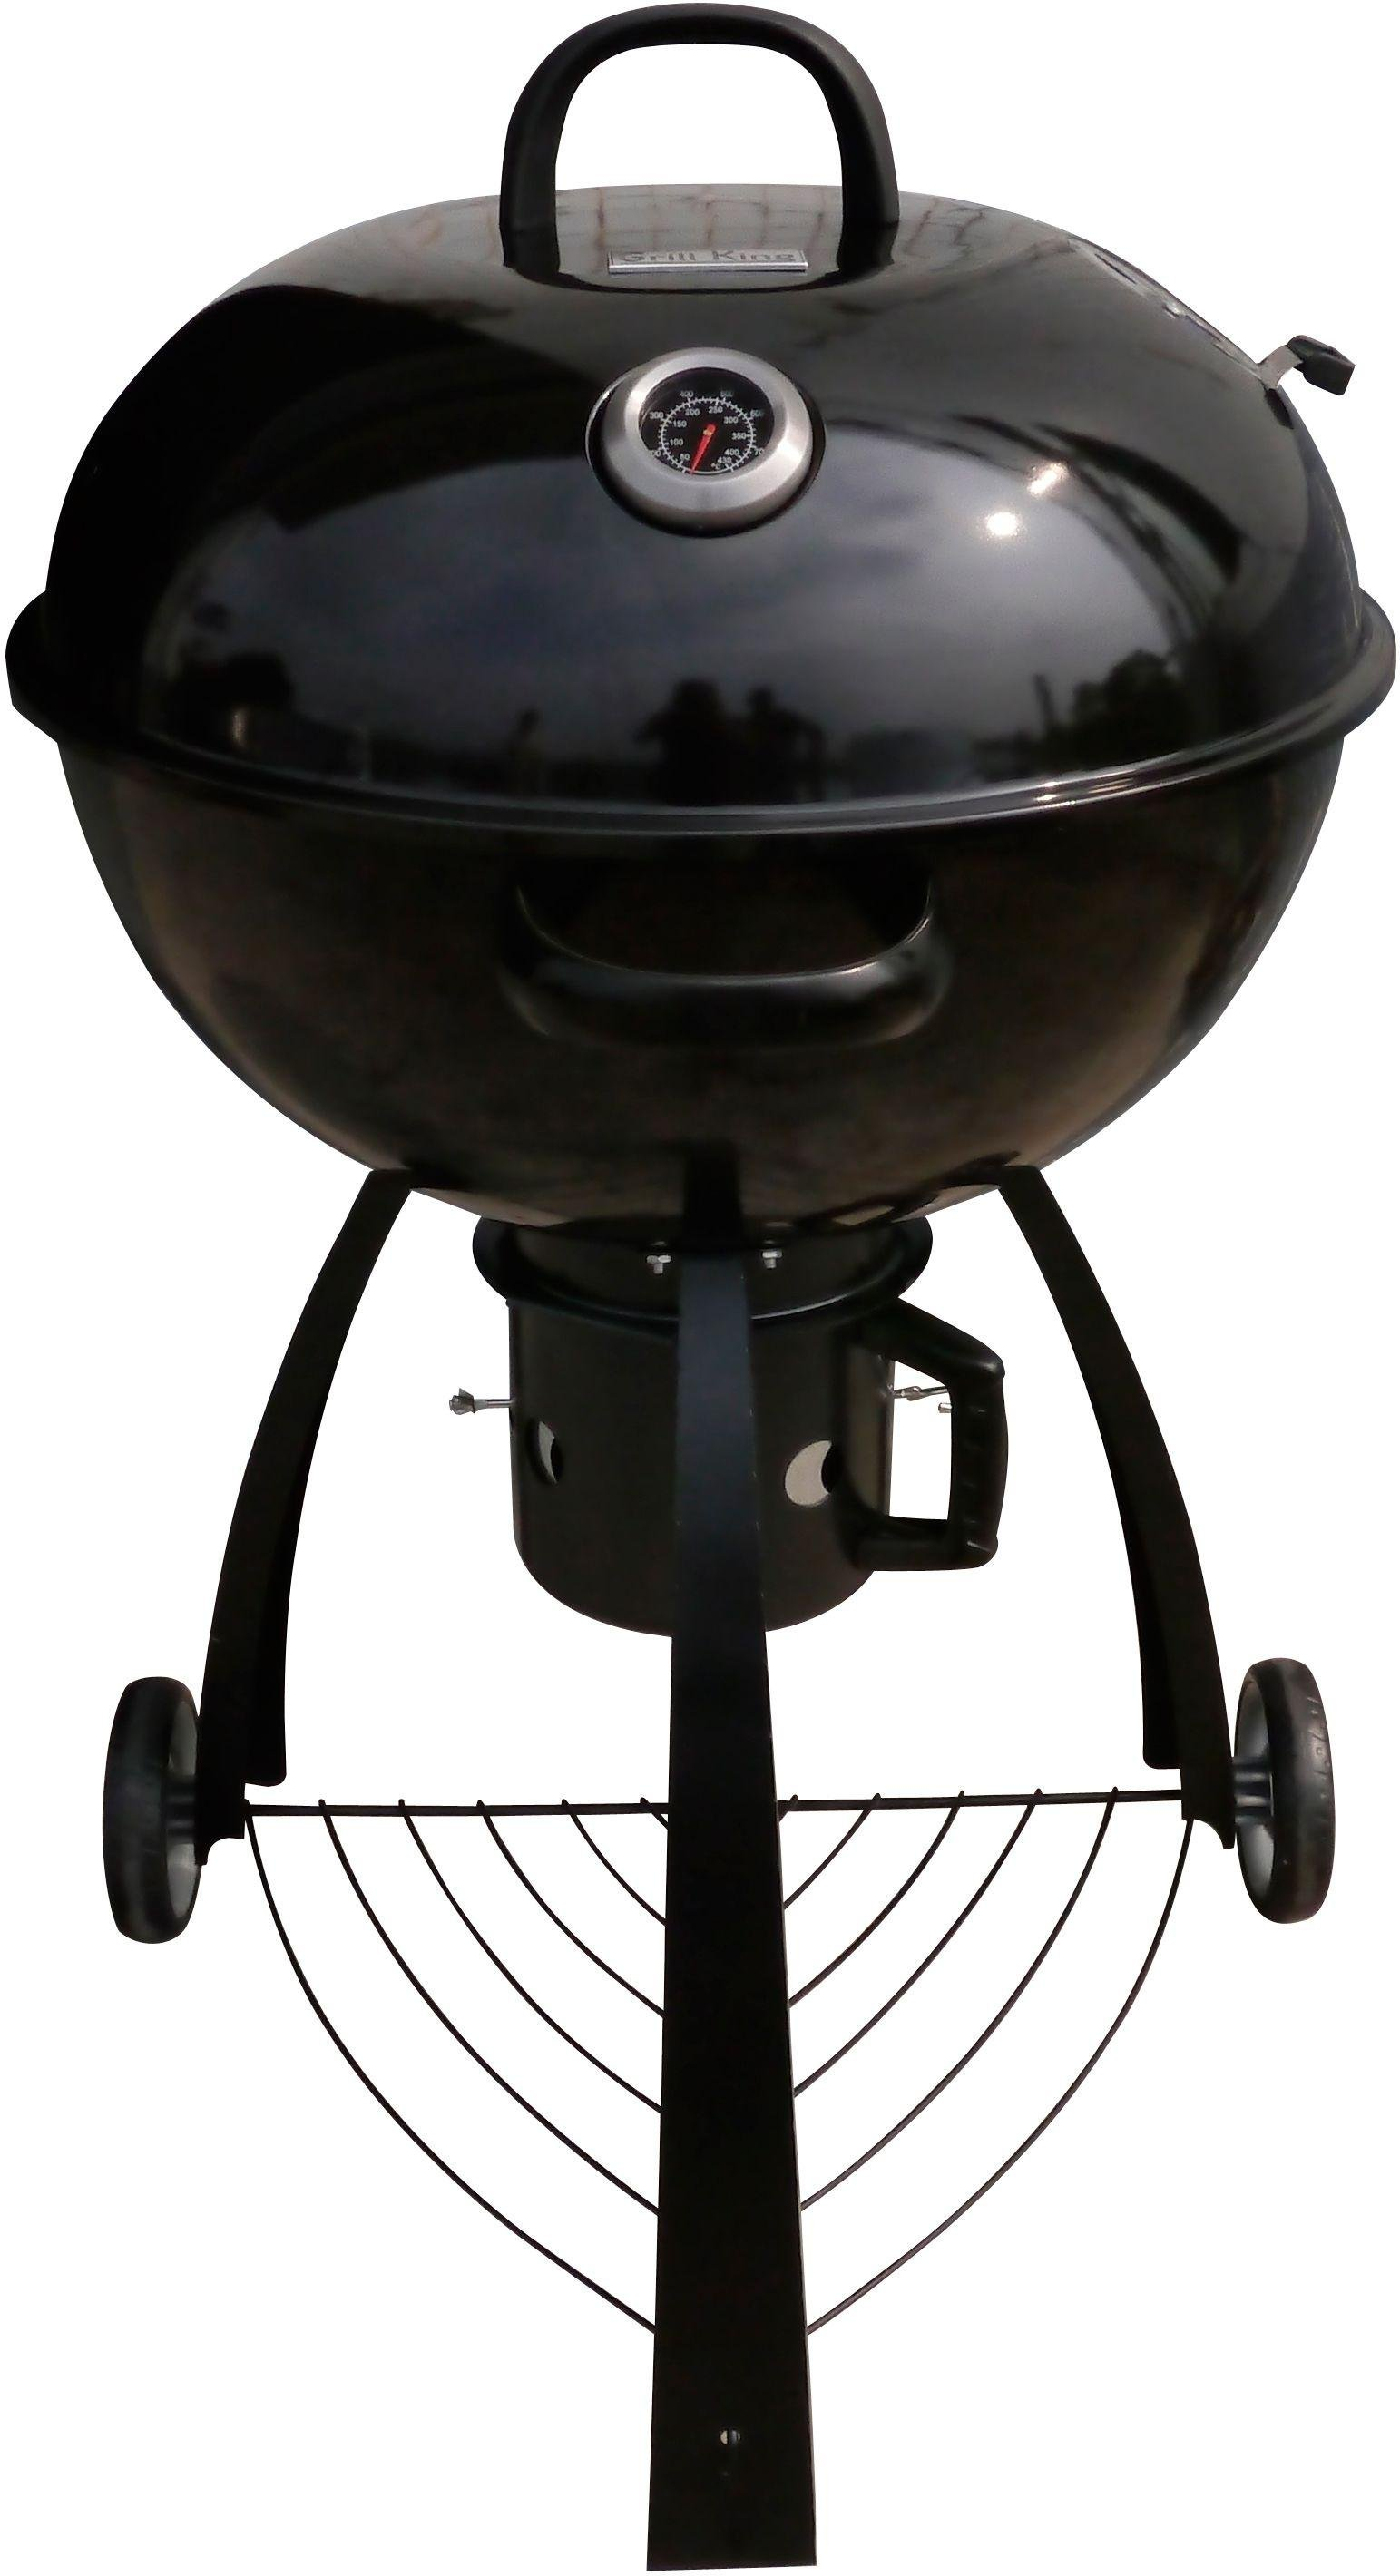 Grill King - 56cm Shiny Porcelain Kettle BBQ - Black lowest price